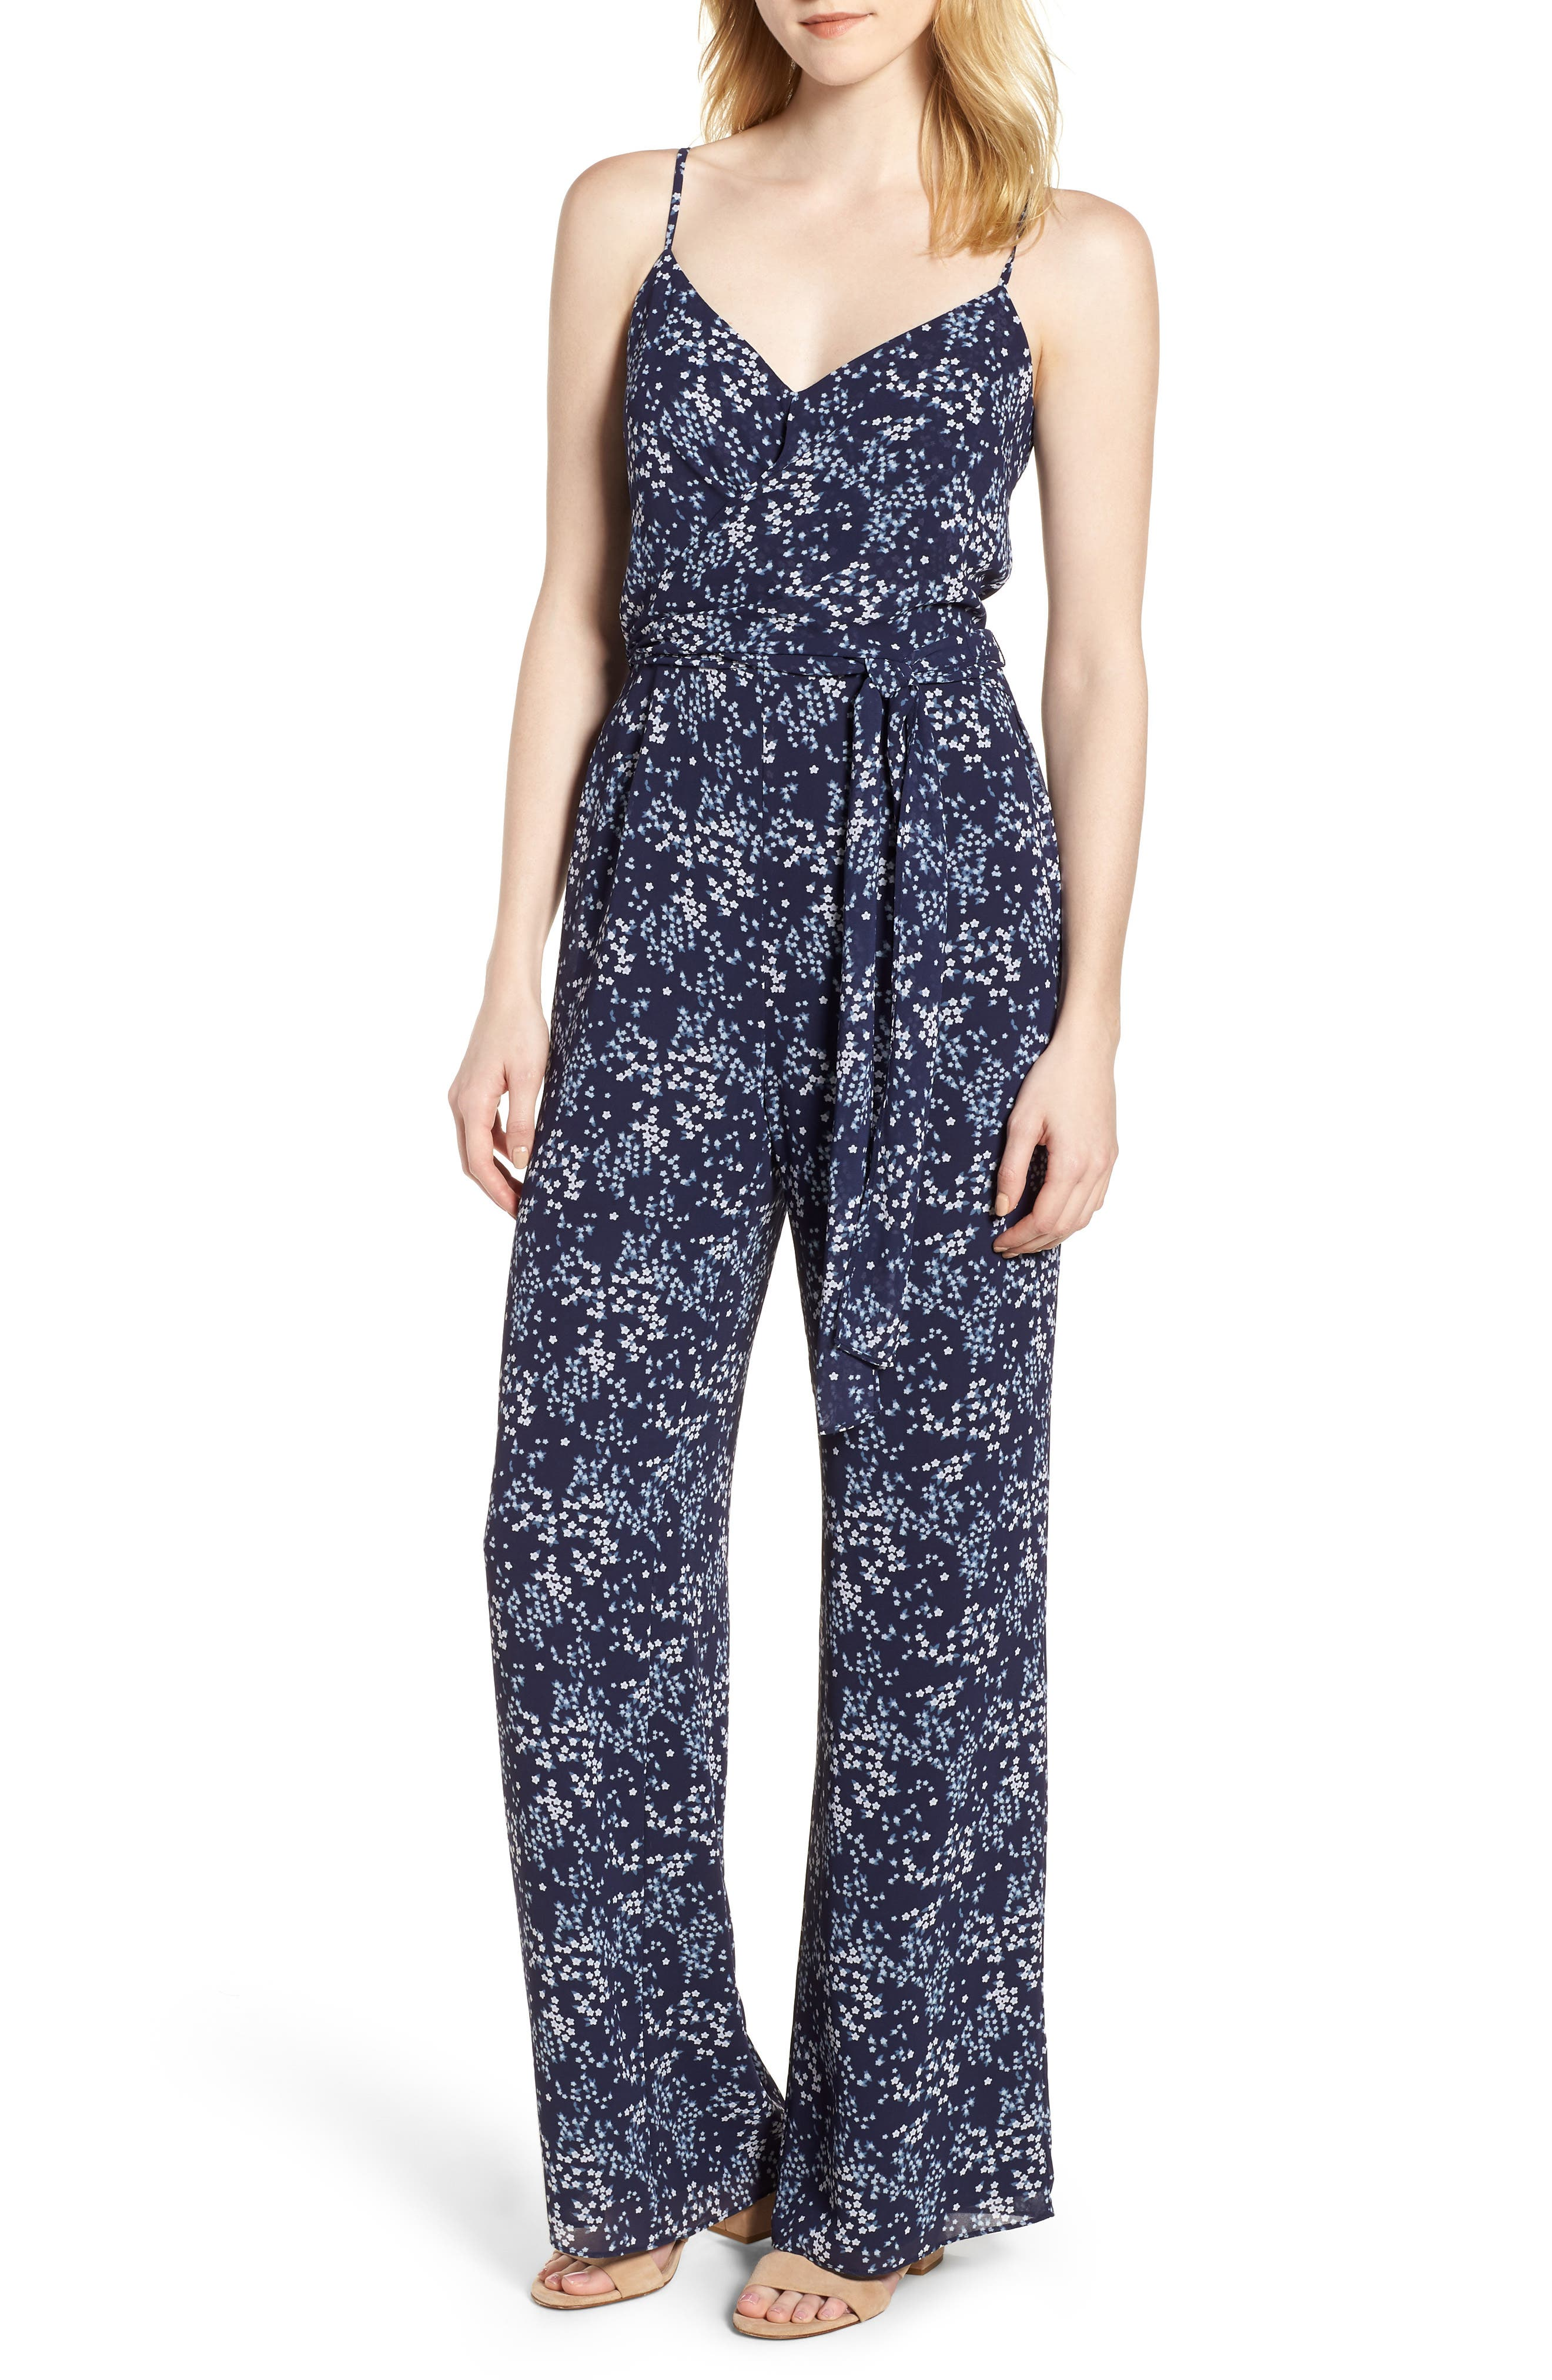 Scattered Blooms Jumpsuit,                             Main thumbnail 1, color,                             True Navy/ Light Chambray